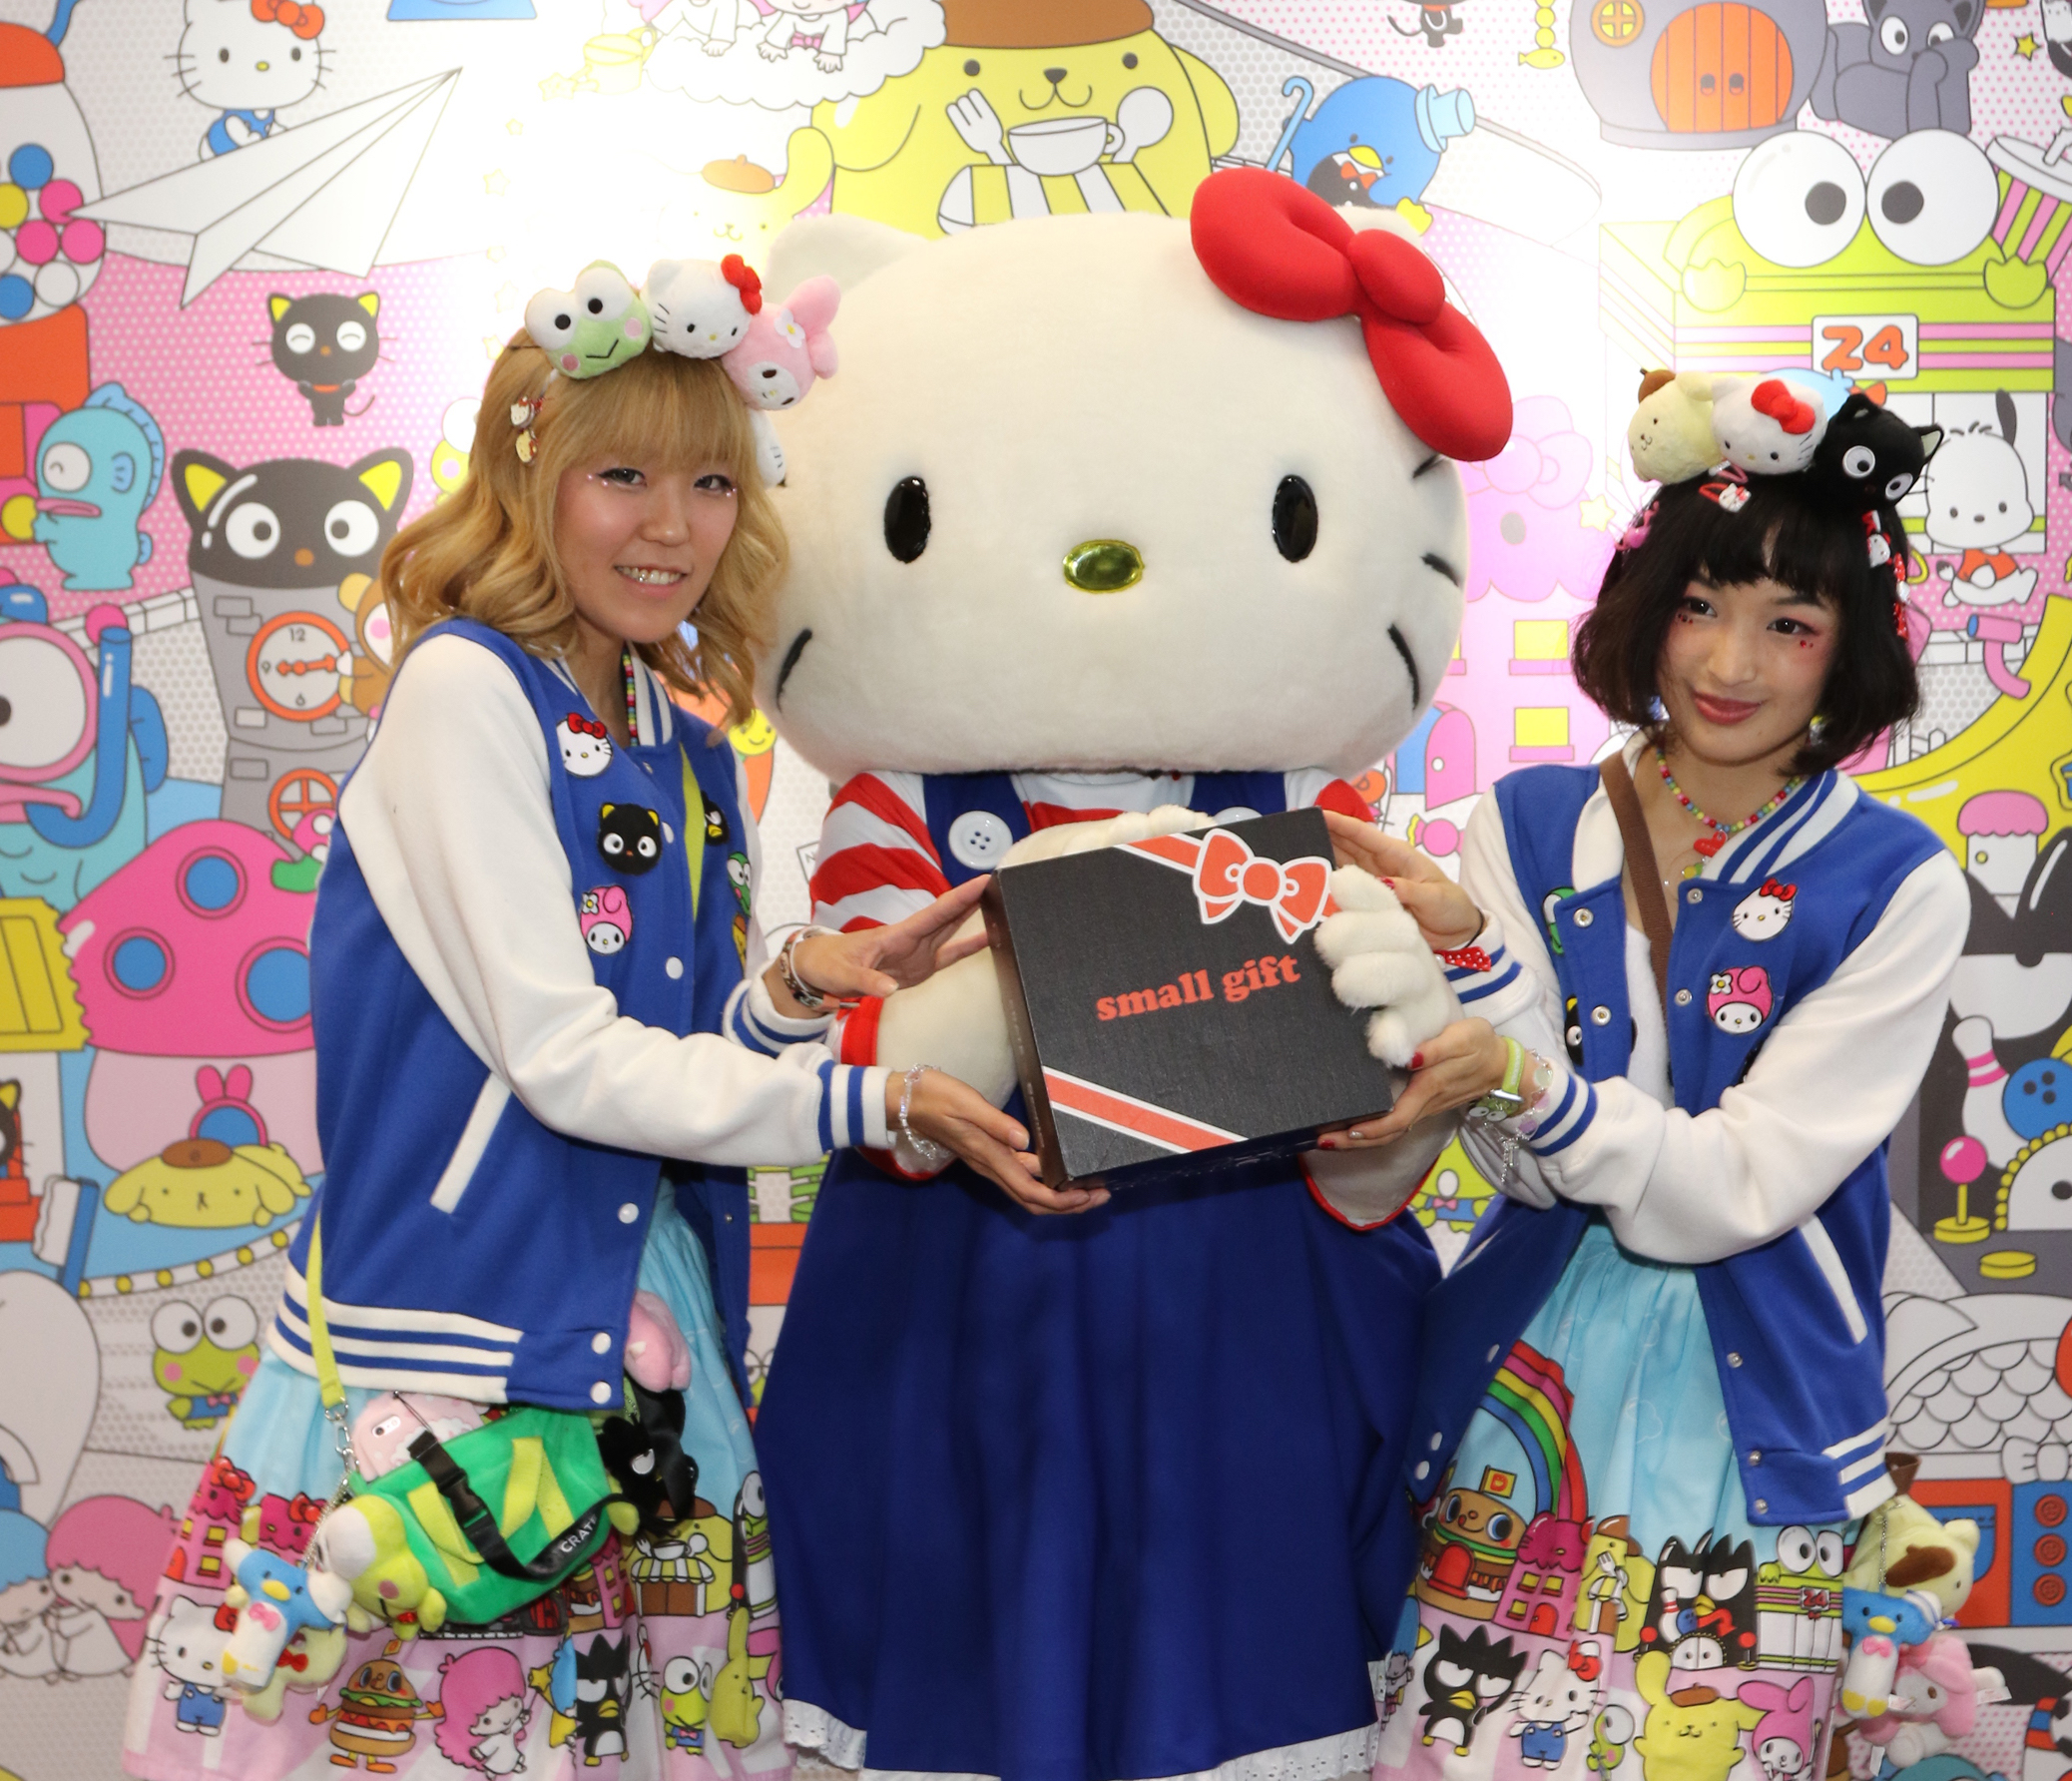 Hello Kitty fans rejoice: Sanrio has teamed up on a super cute subscription crate